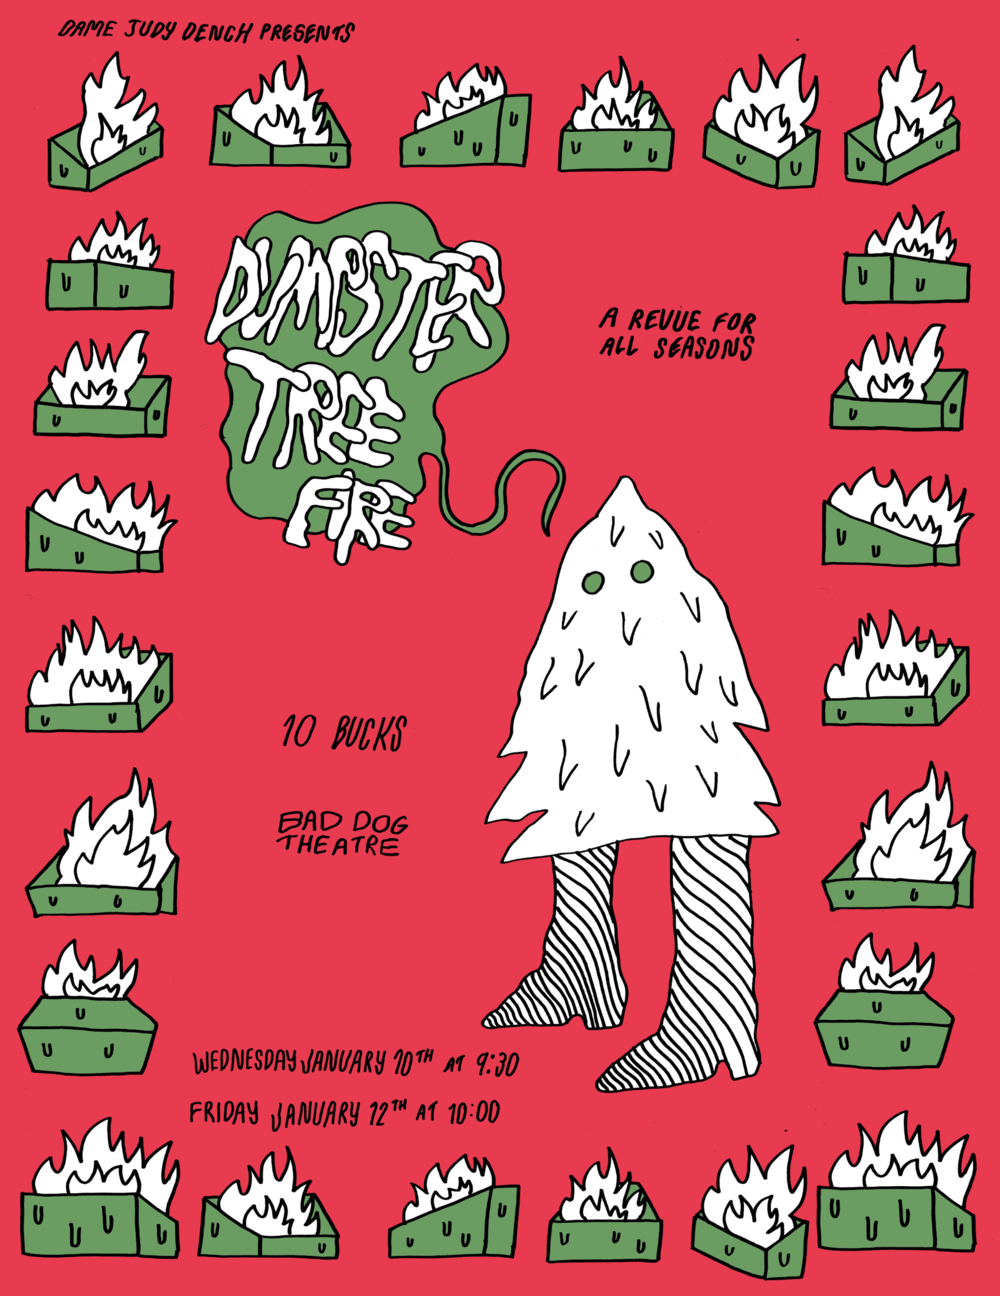 dumpster tree fire sketch show poster